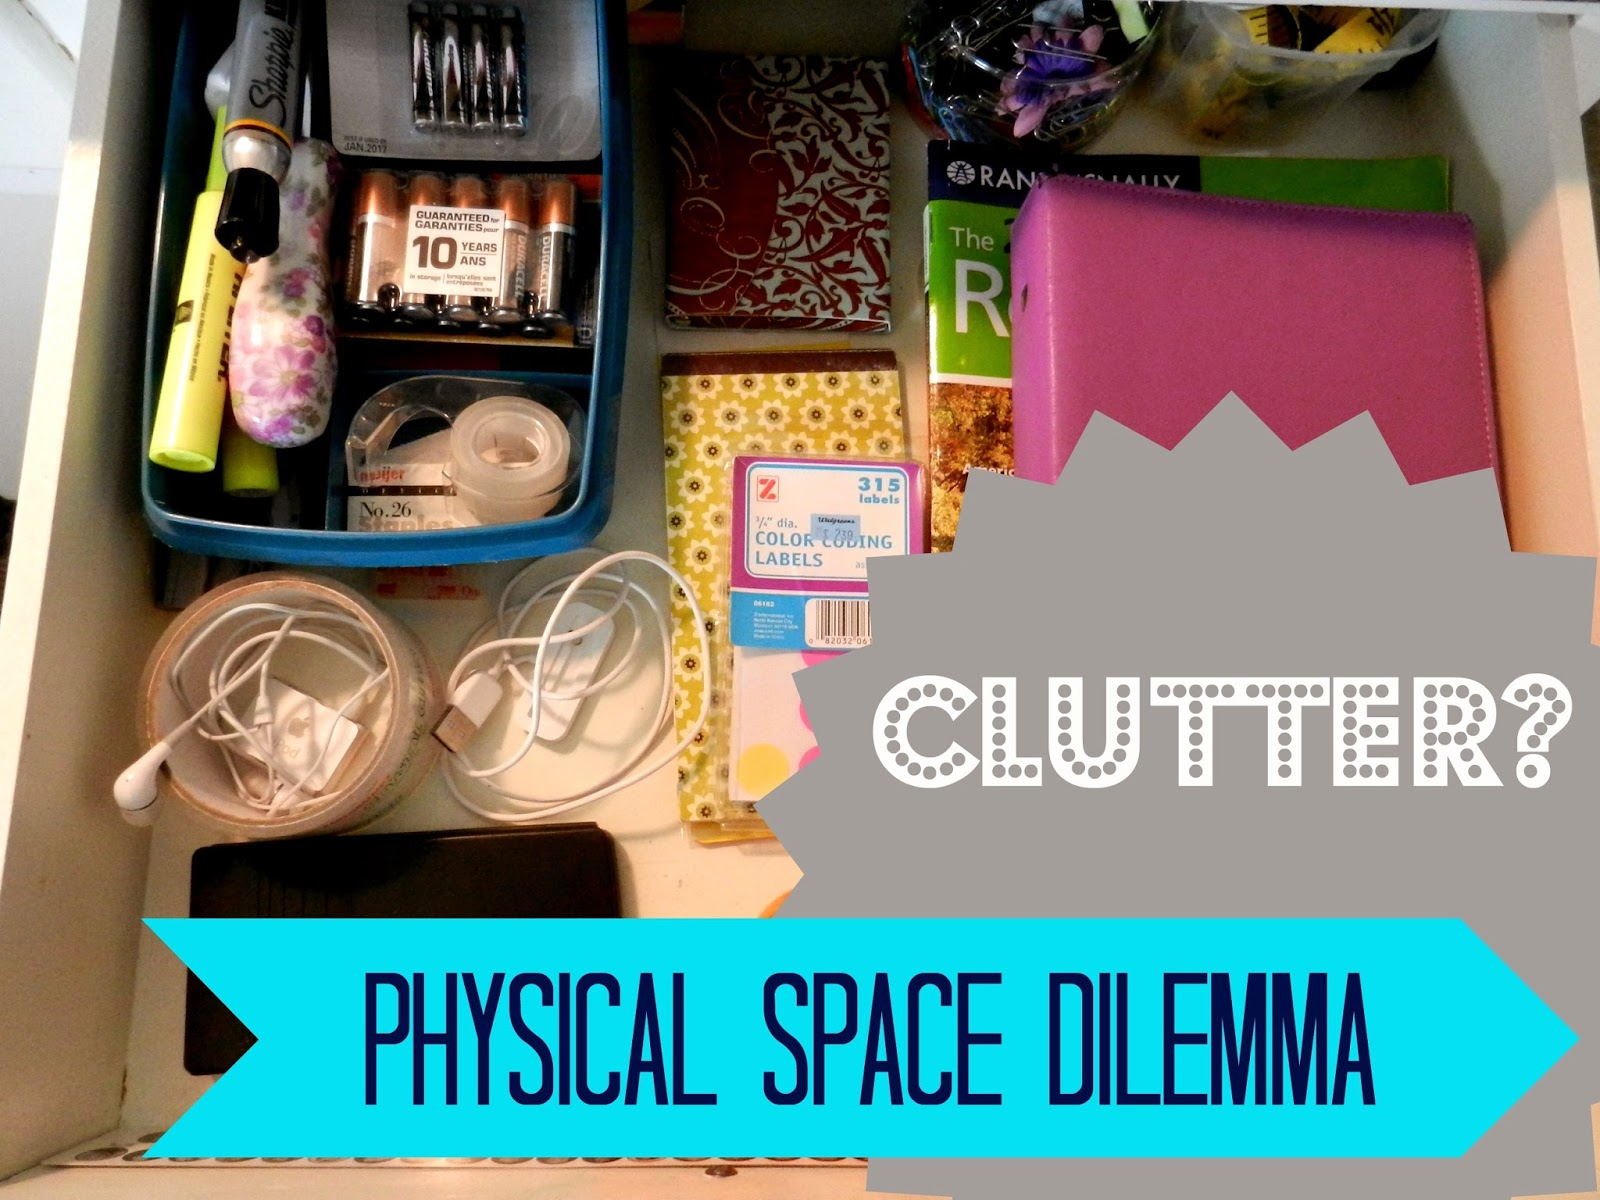 Clutter? The Physical Space Dilemma